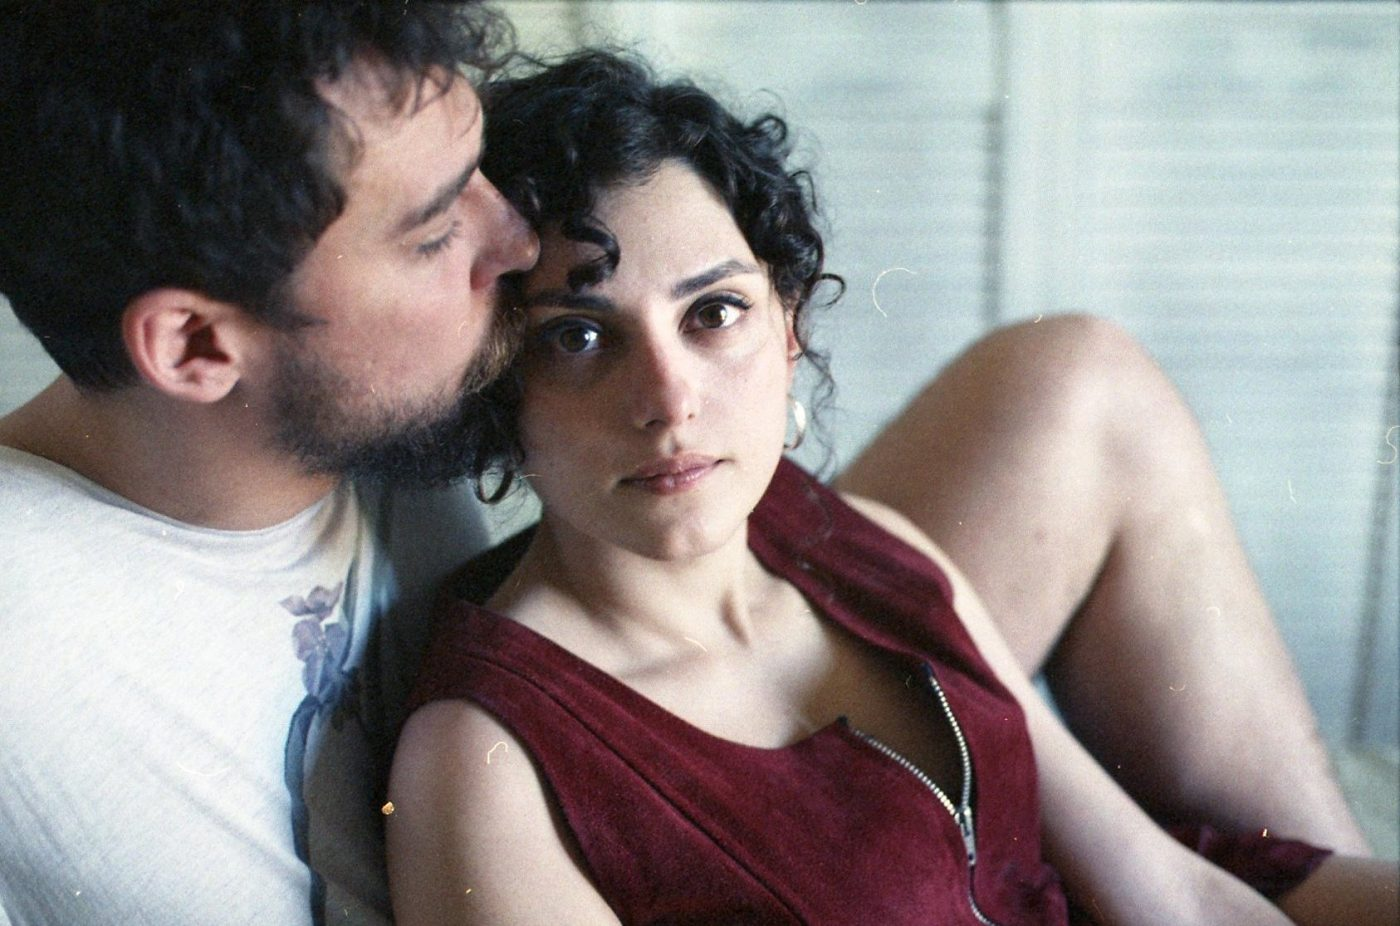 love letters archives post pravda tbilisi in the key of love a photo essay by dina oganova and zaza bourassa